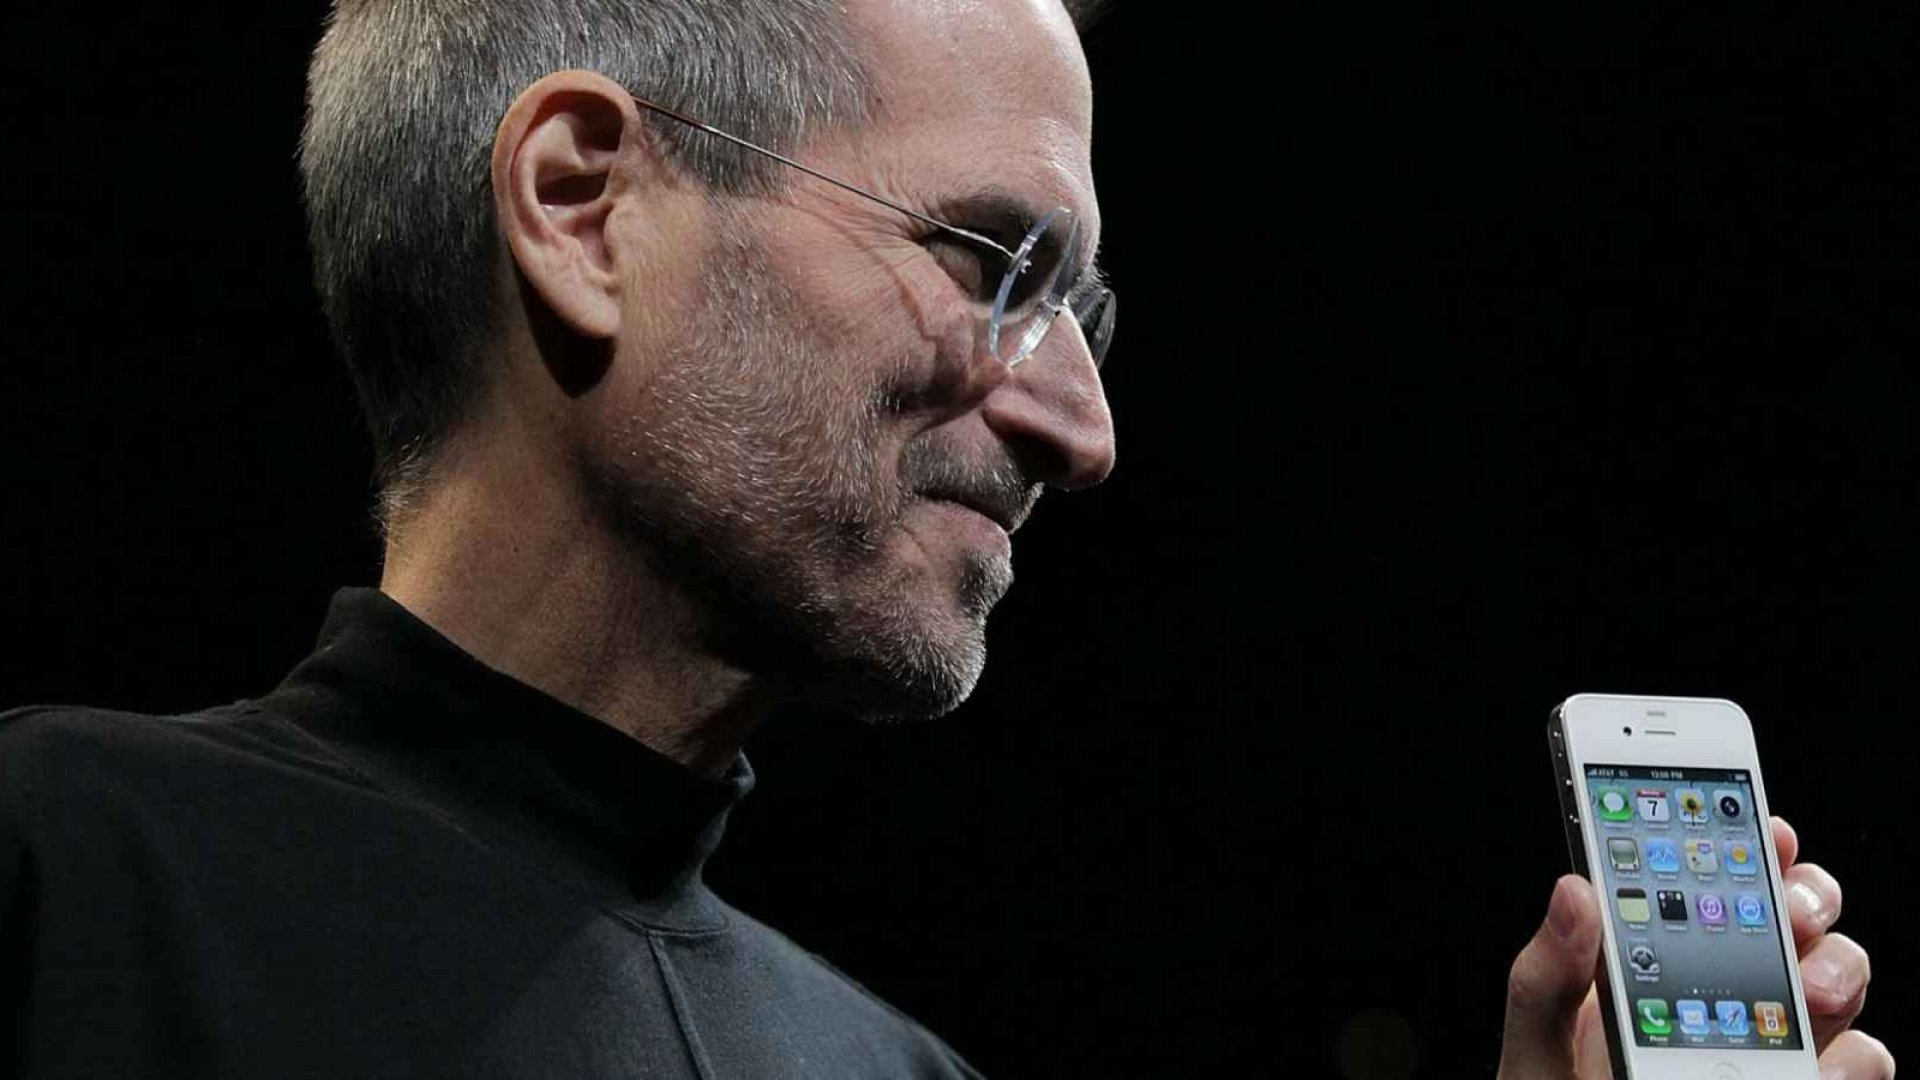 We Might Be Overlooking the Next Steve Jobs